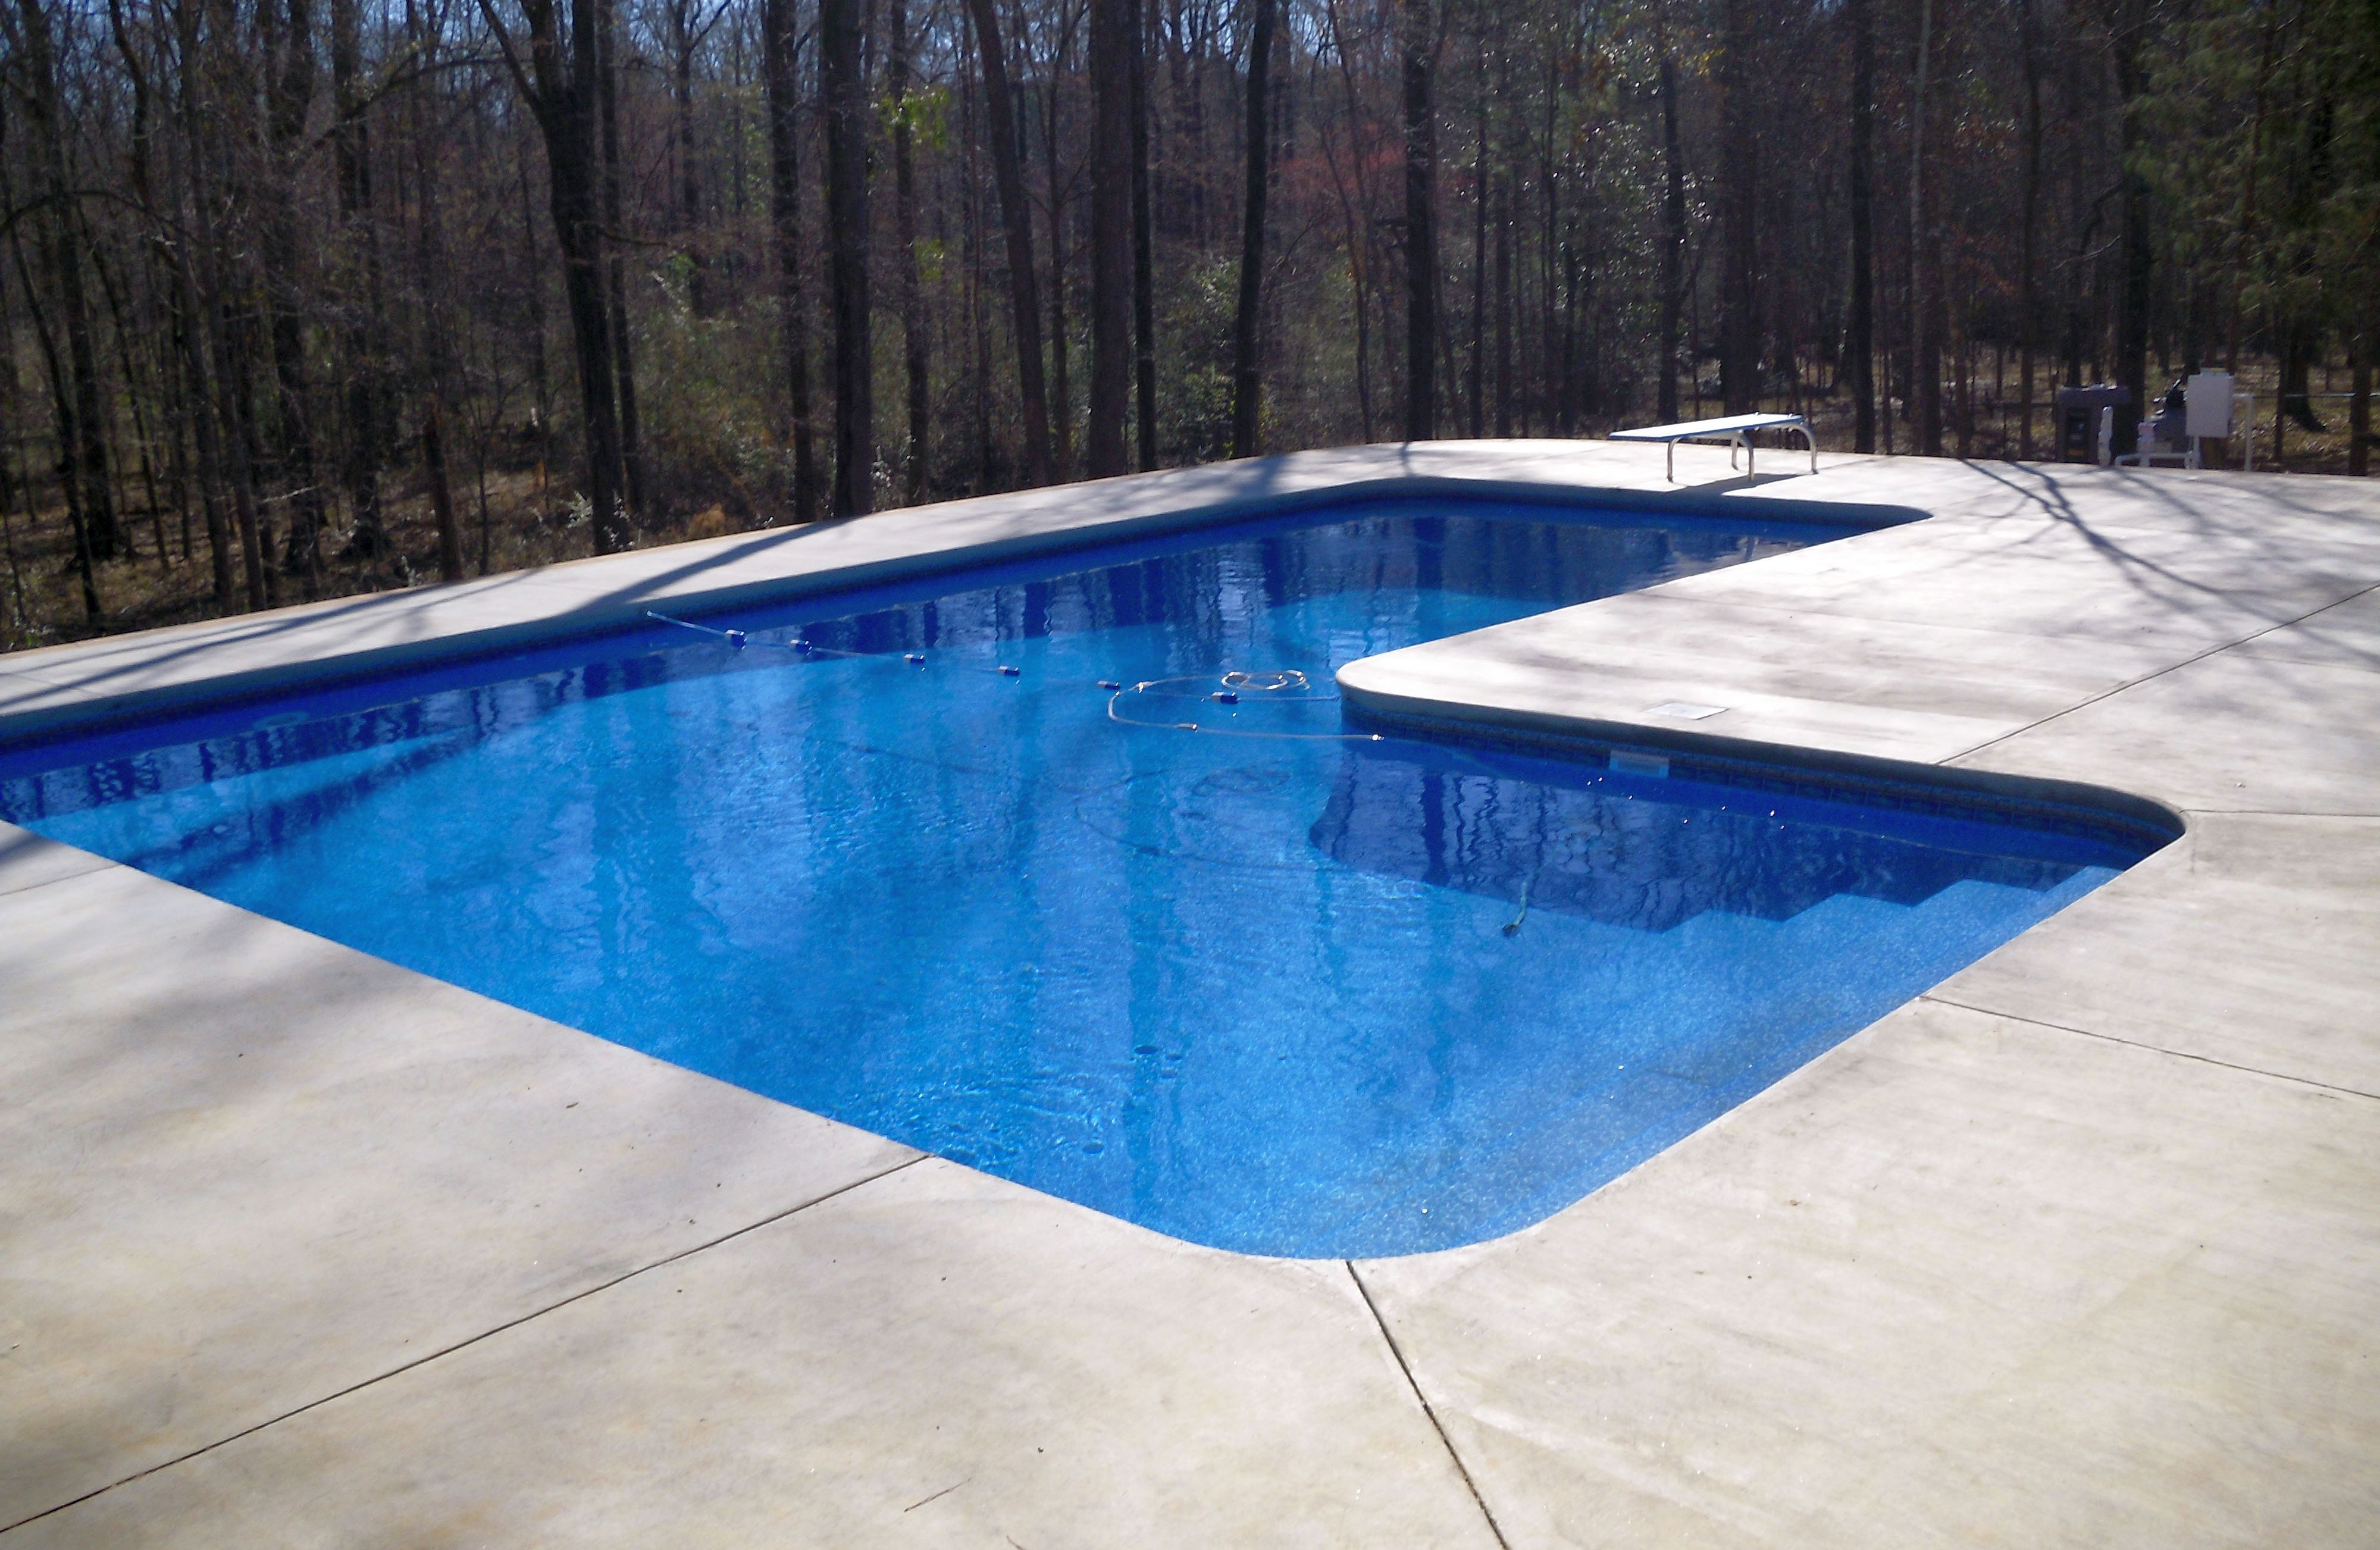 Vinyl liner pool construction columbus georgia for Best type of pool